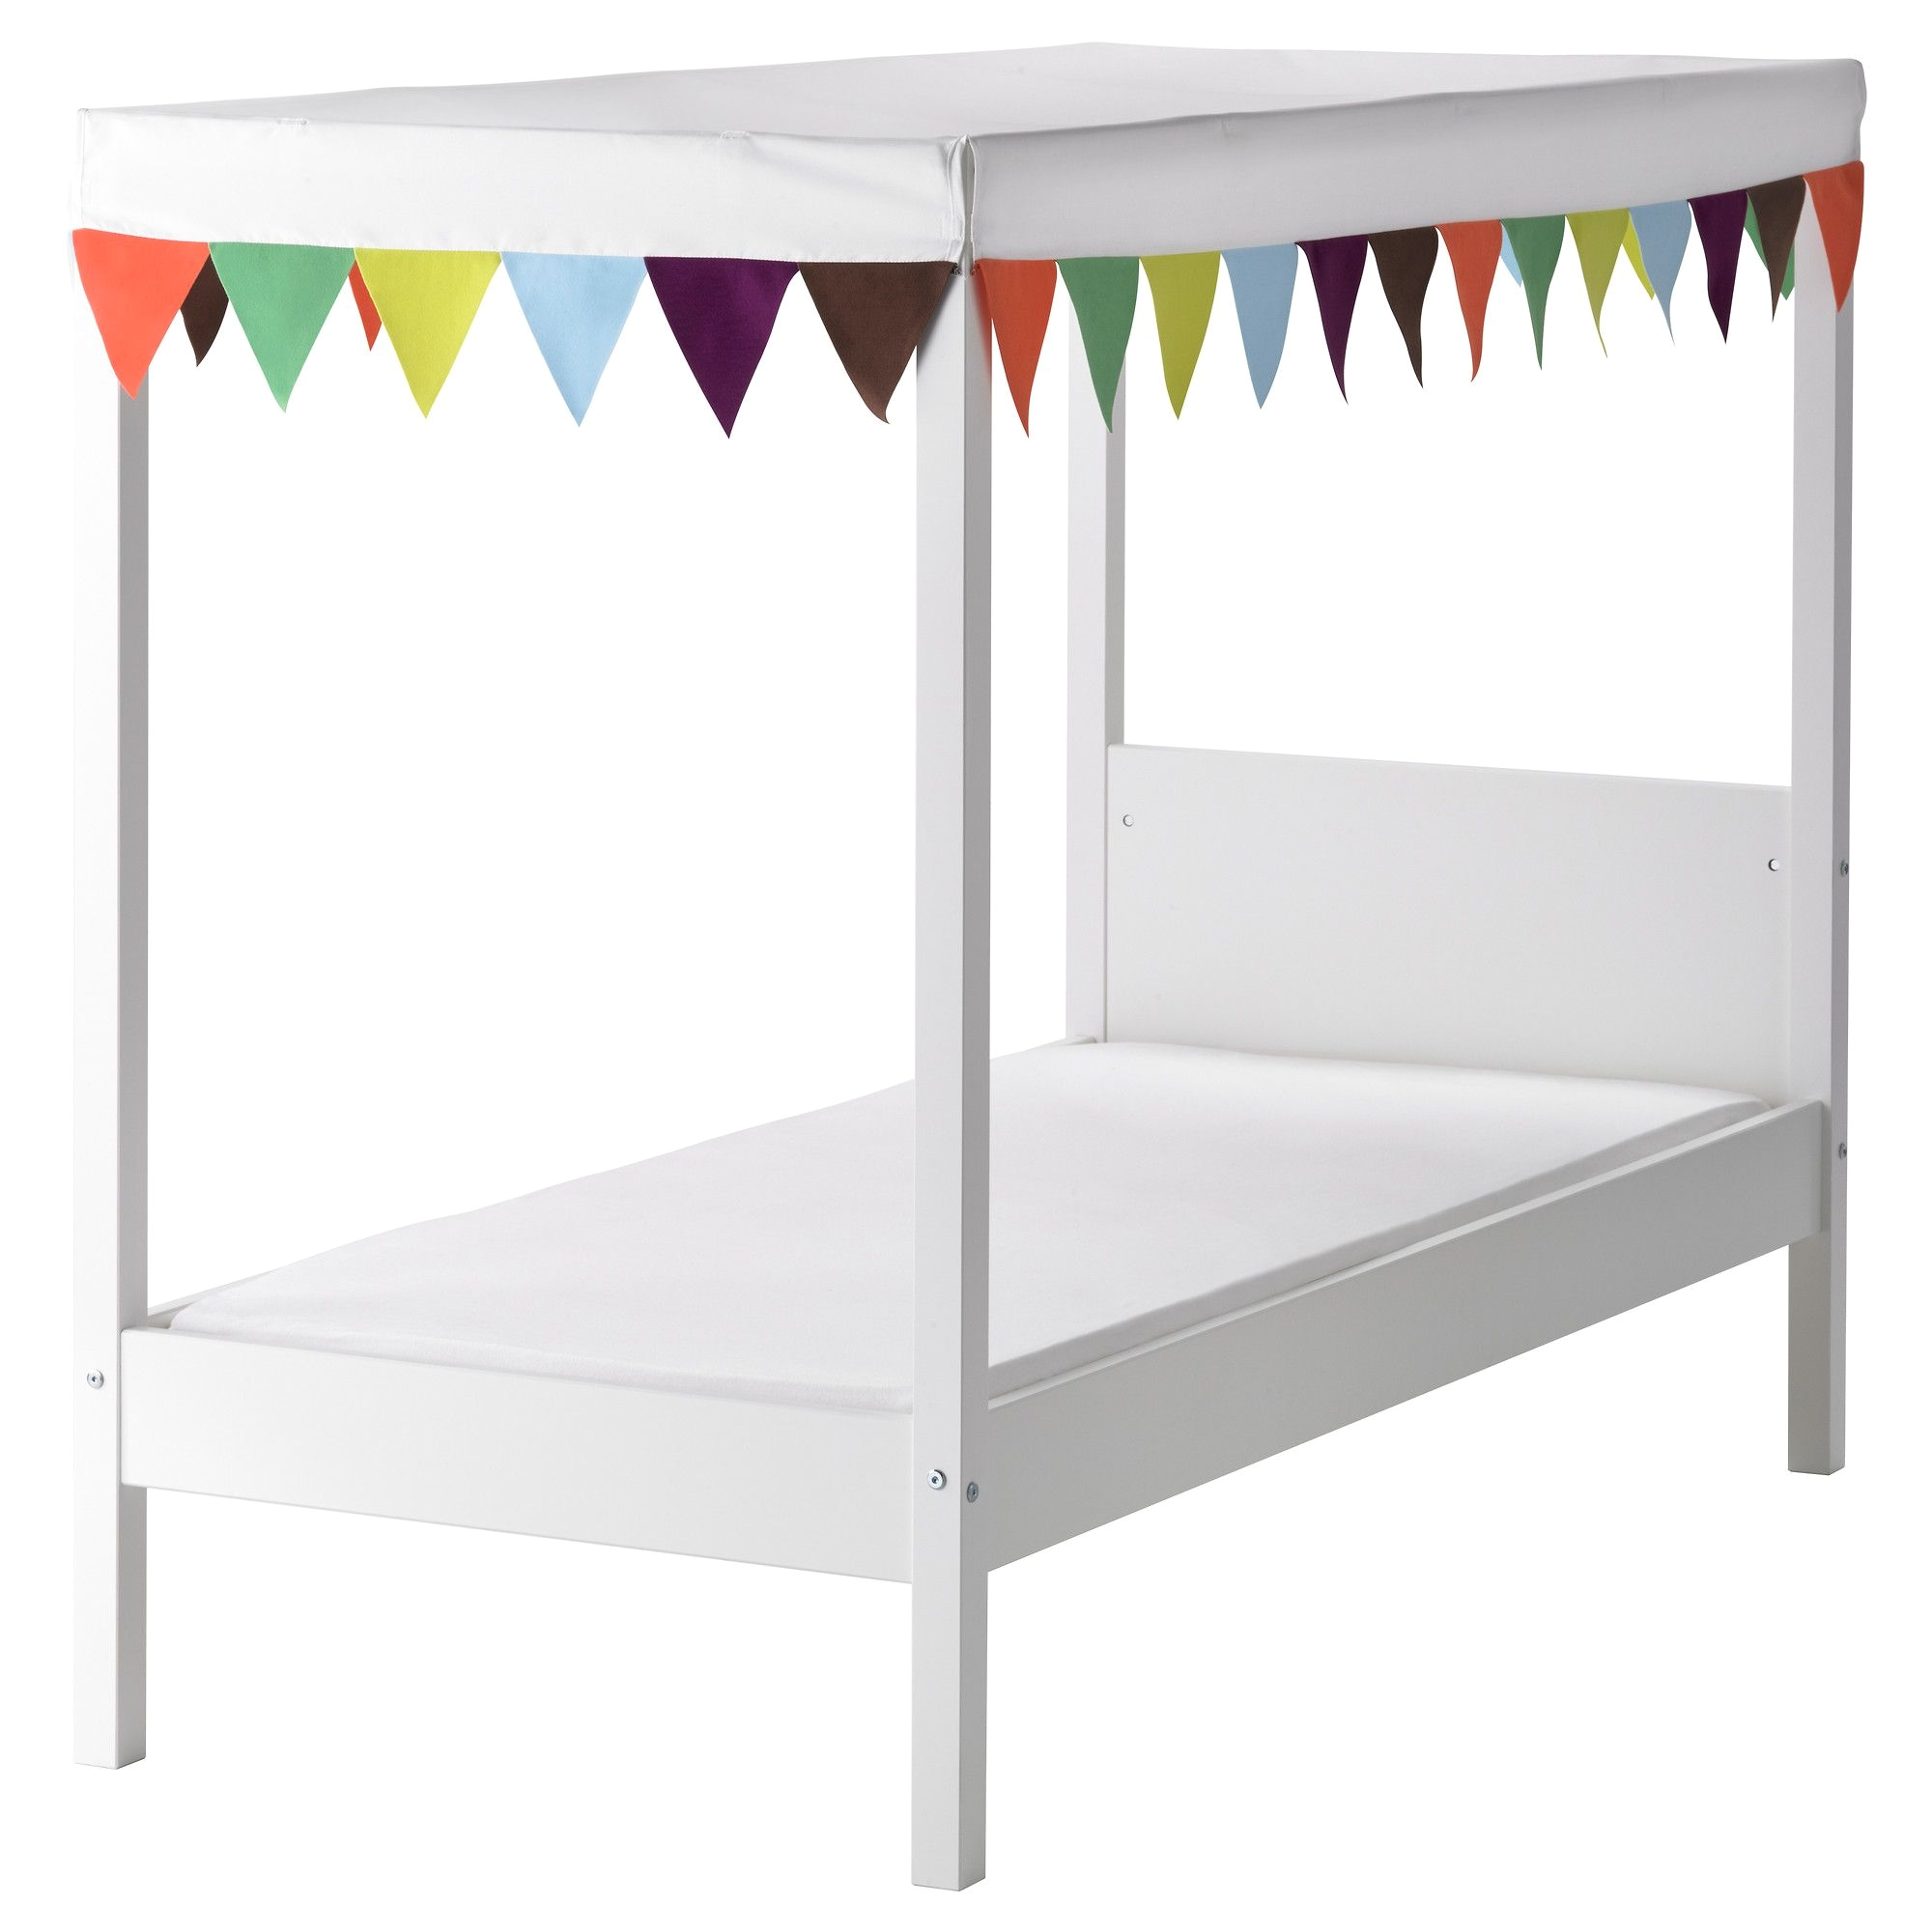 Small Chairs for toddlers Love This Little Bed for A toddler How Fun A Vre Bed with Slatted